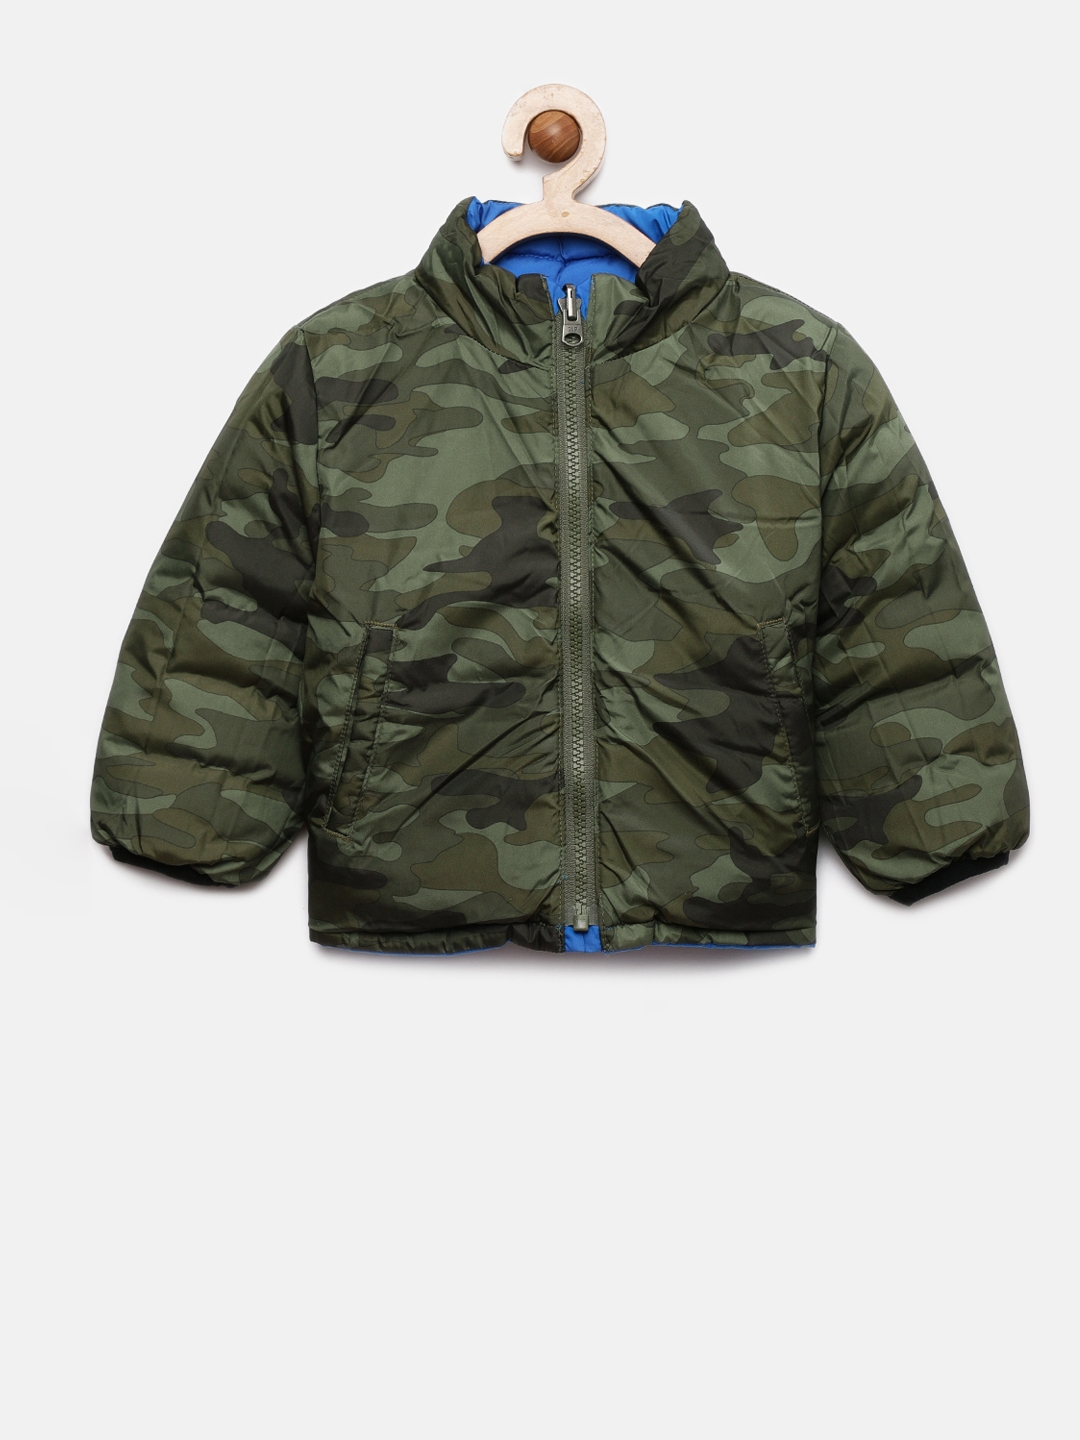 b4b7268f046a5 Buy GAP Boys' Olive Green & Blue Reversible Camo Puffer Jacket ...